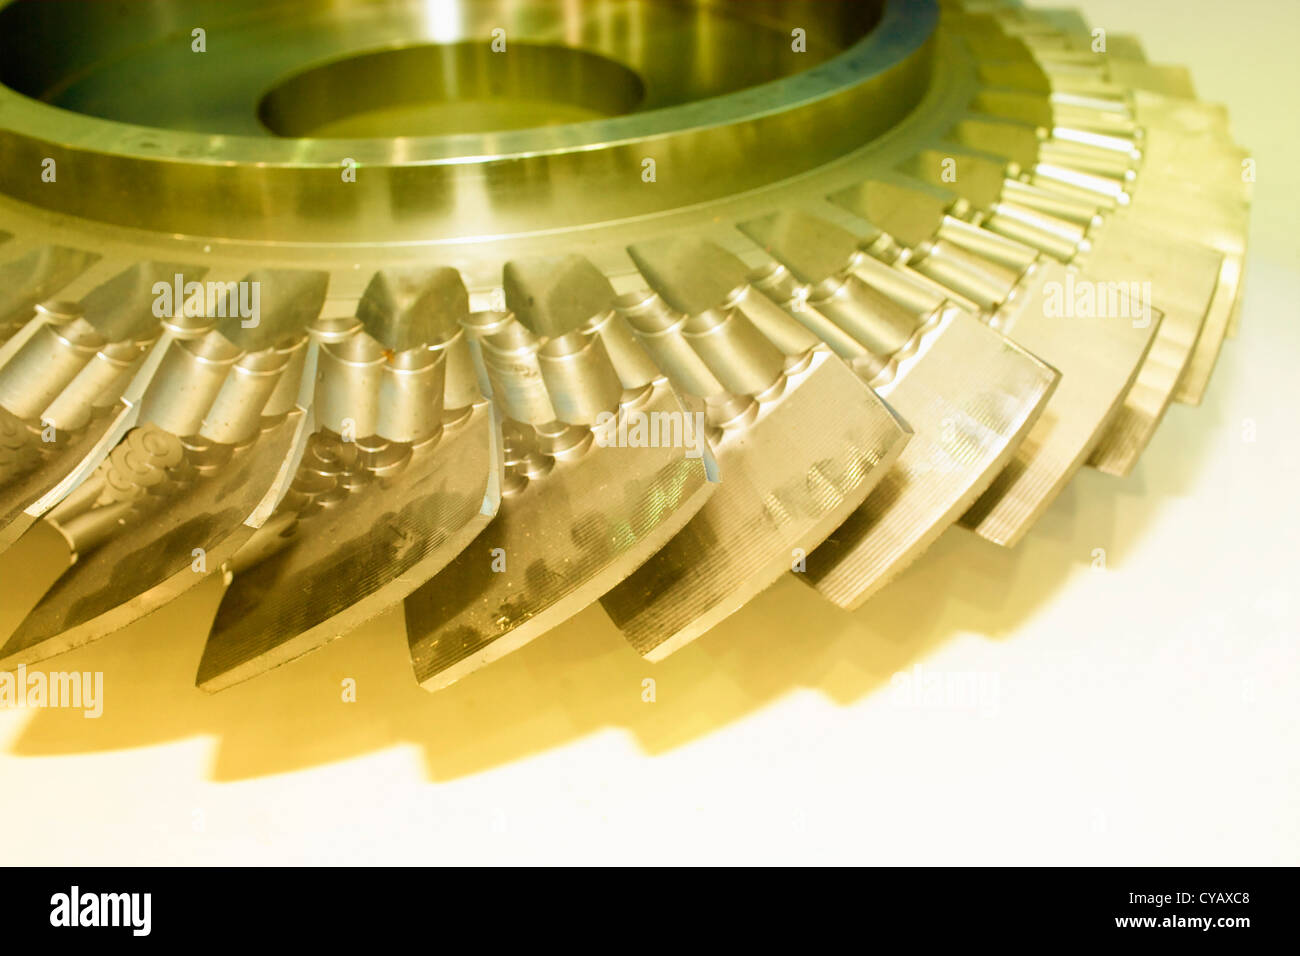 blade of gear with yellow oil - Stock Image